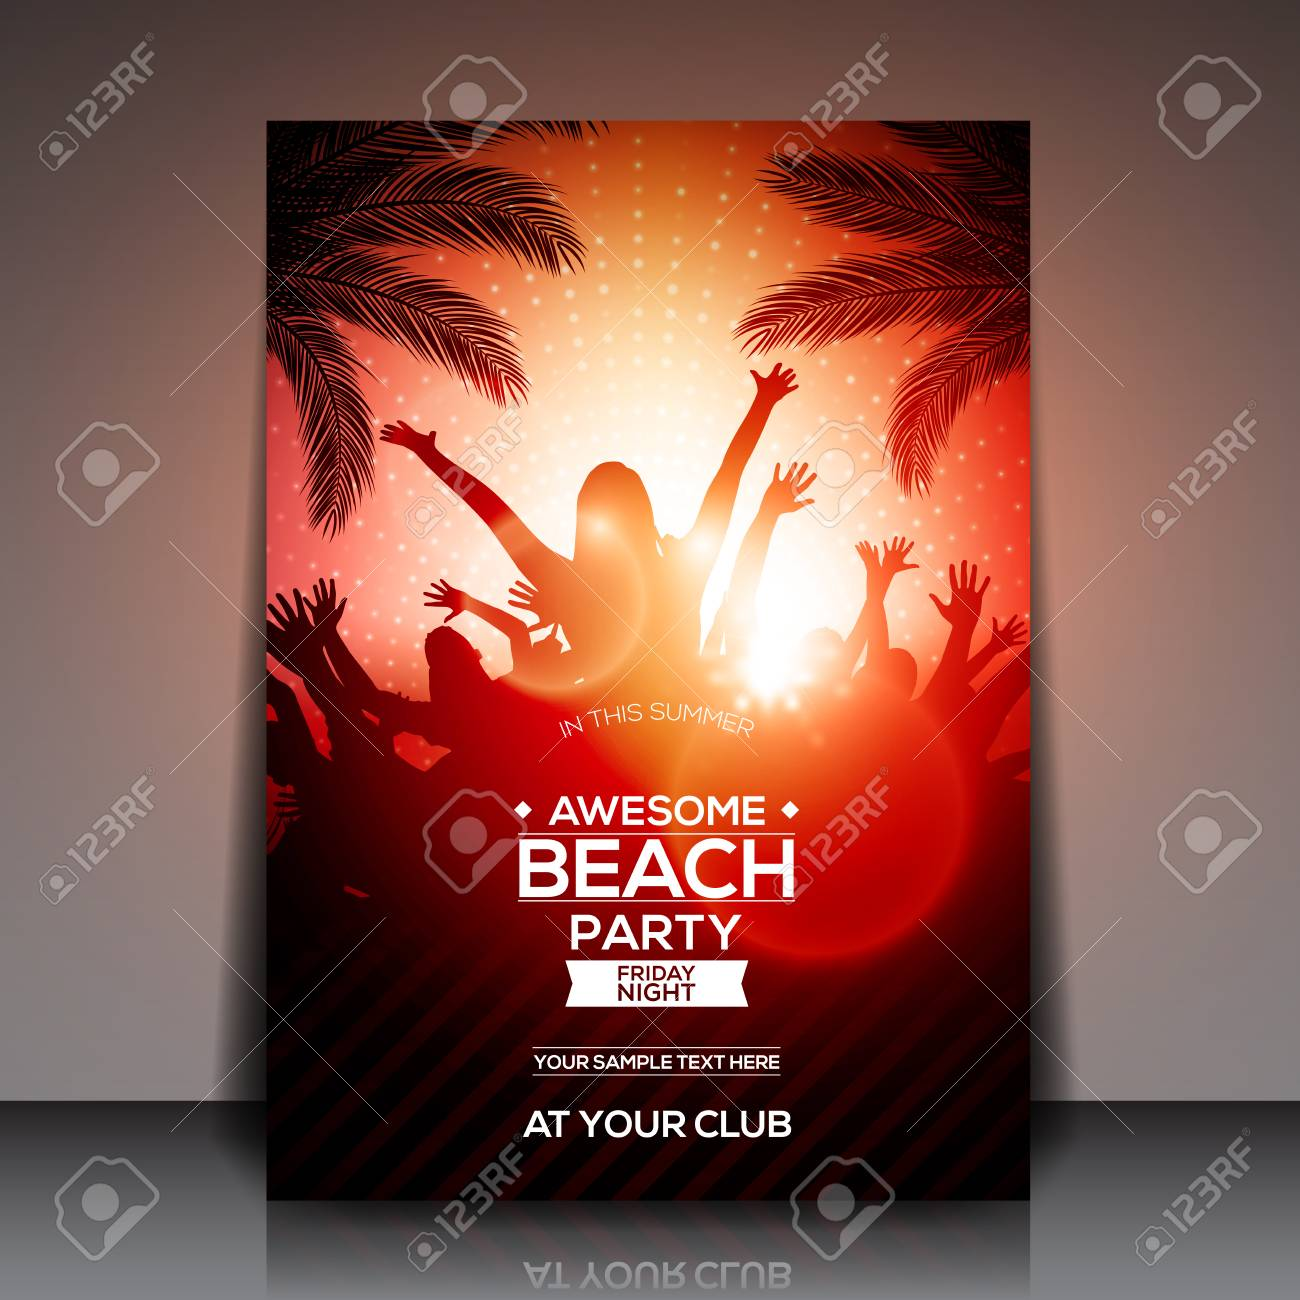 Red Summer Beach Party Flyer Template - Vector Design Royalty Free ...